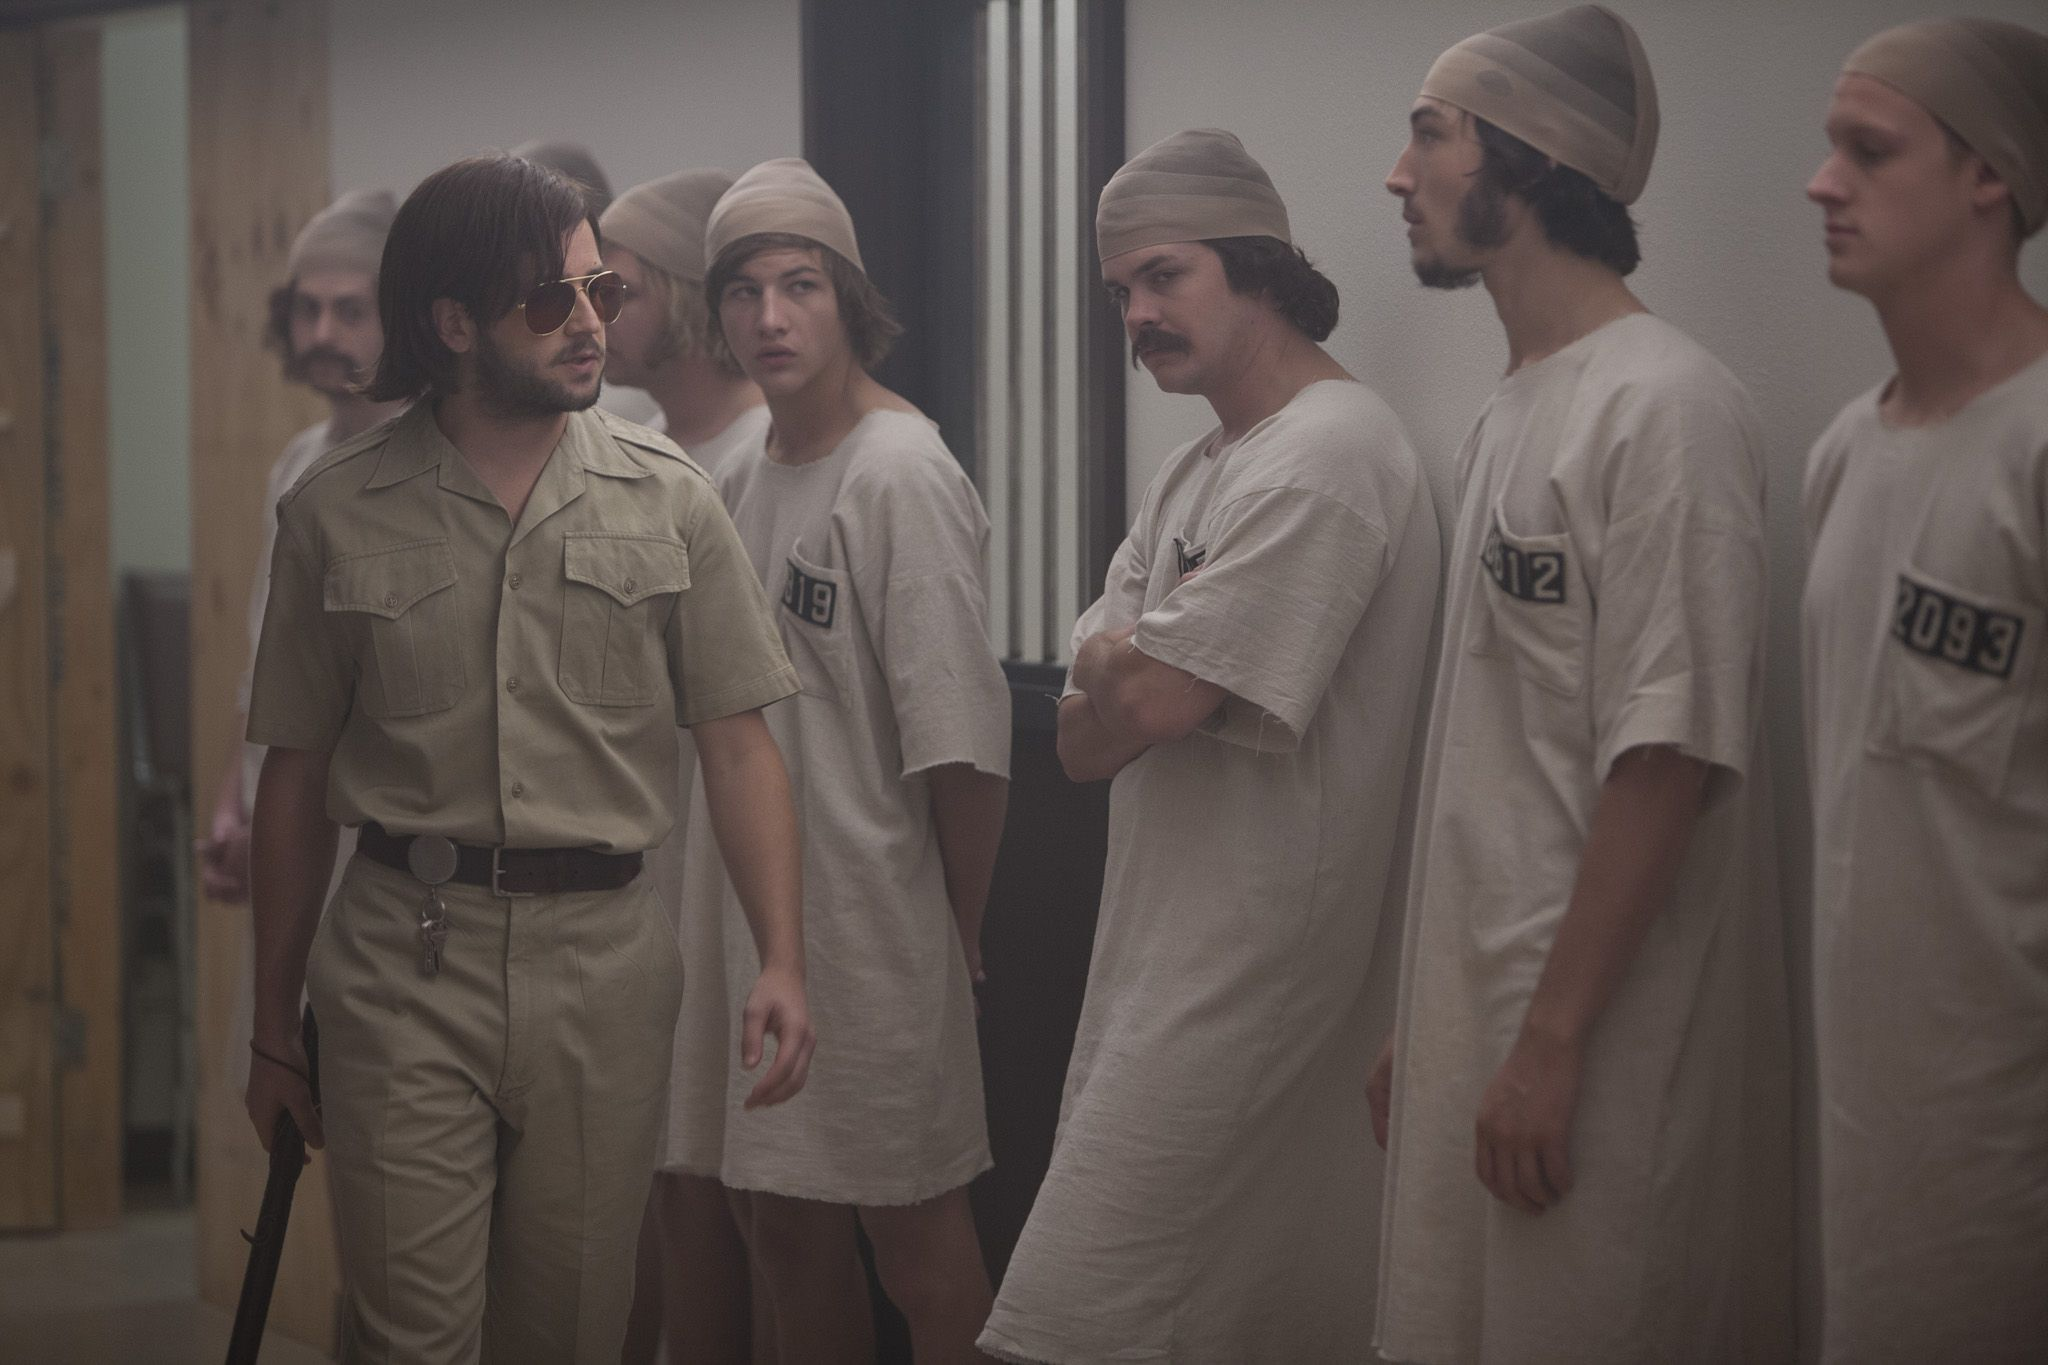 THE STANFORD PRISON EXPERIMENT Michael Angarano & Tye Sheridan & Johnny Simmons & Ezra Miller & Chris Sheffield Photo by Jas Shelton (1)